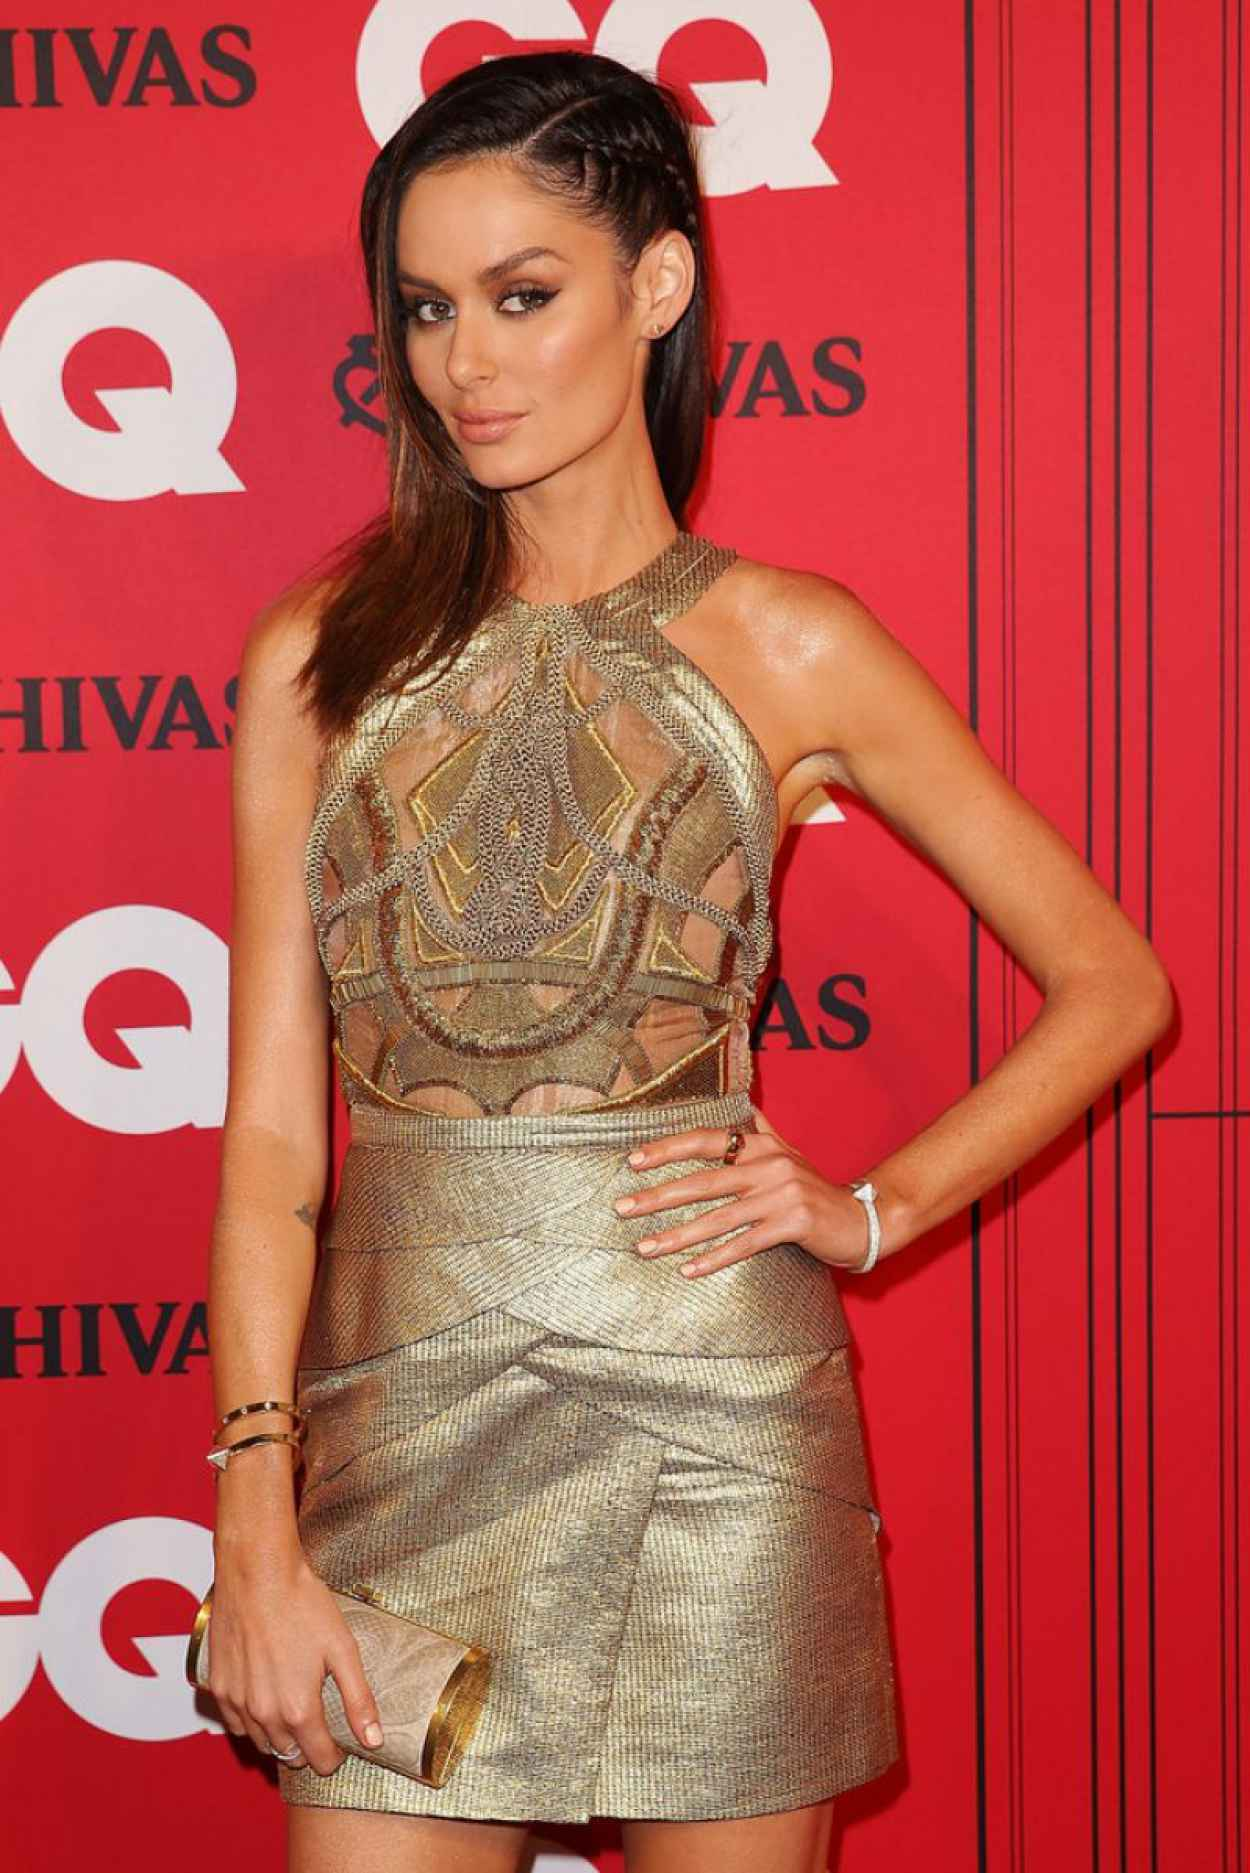 Nicole Trunfio on Red Carpet - GQ Men of the Year Awards in Sydney - November 2015-1